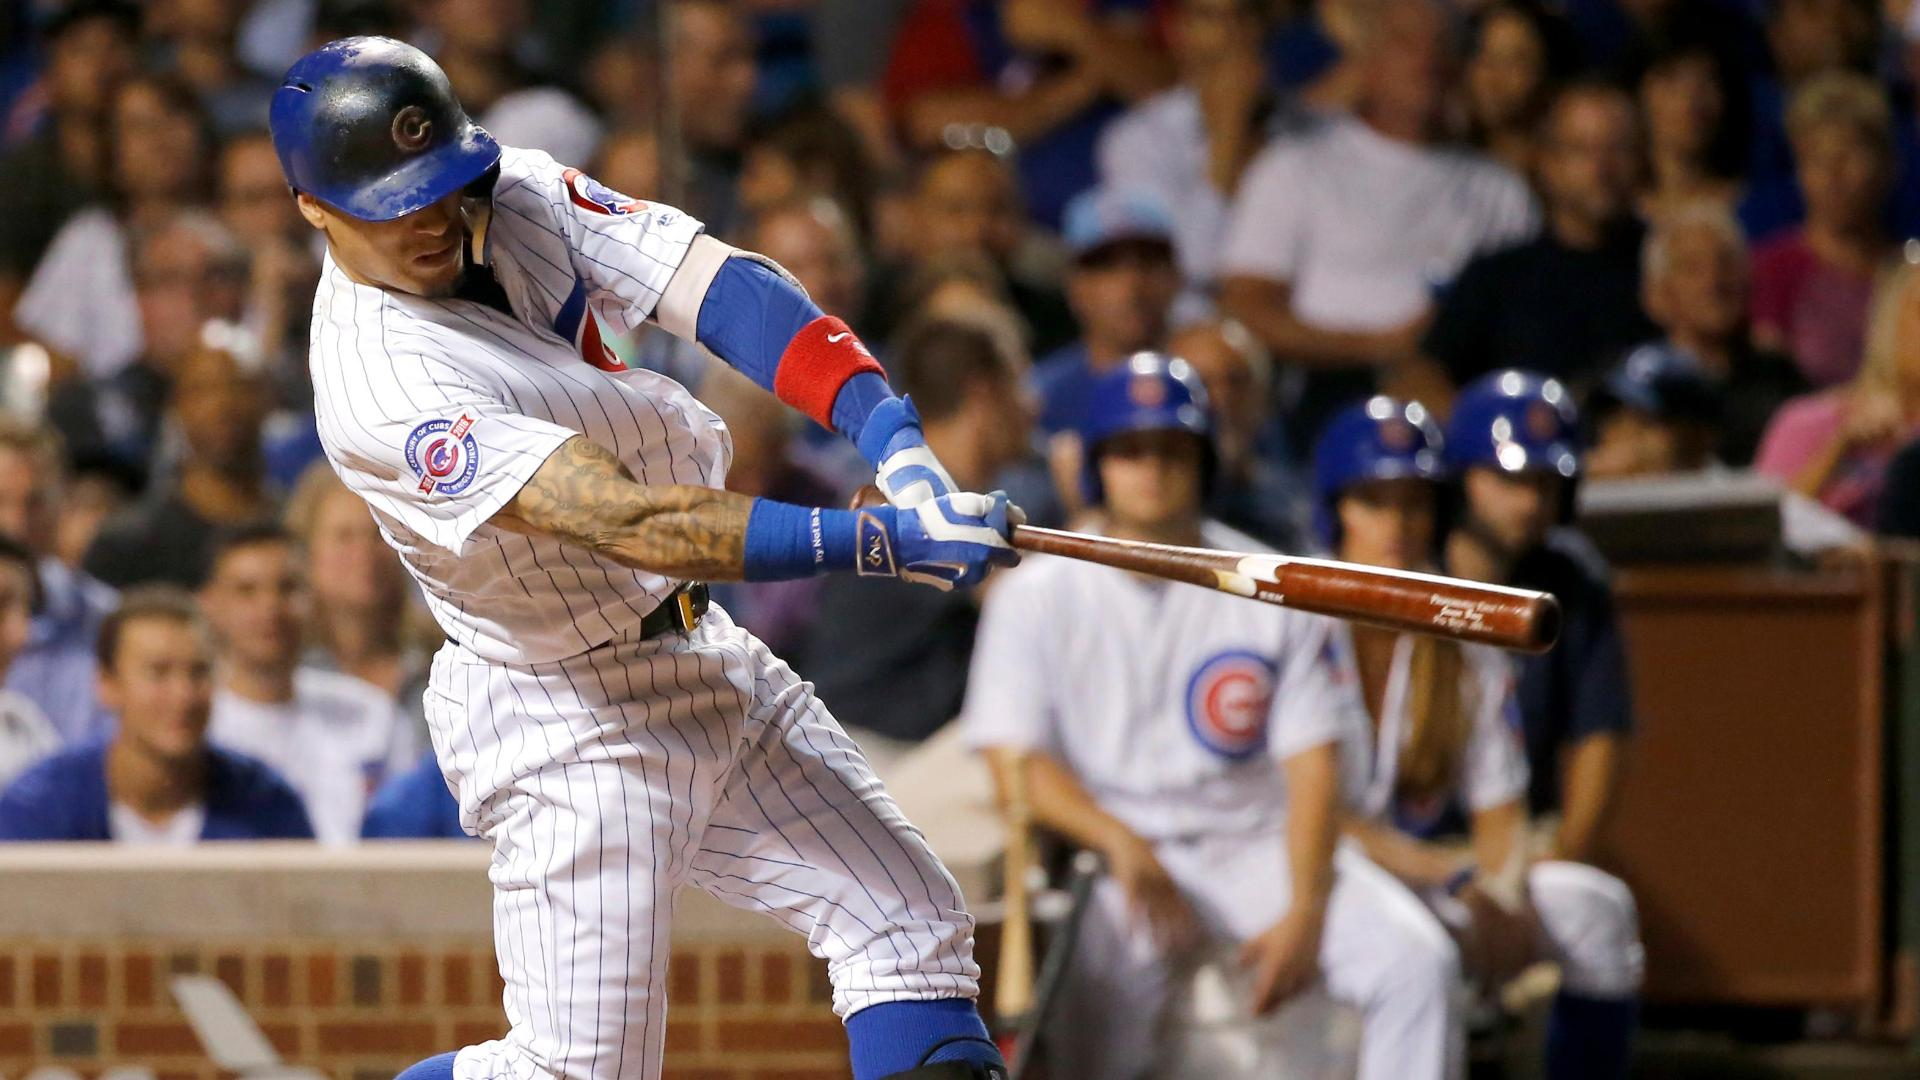 Baez's two-run blast puts the Cubs on top